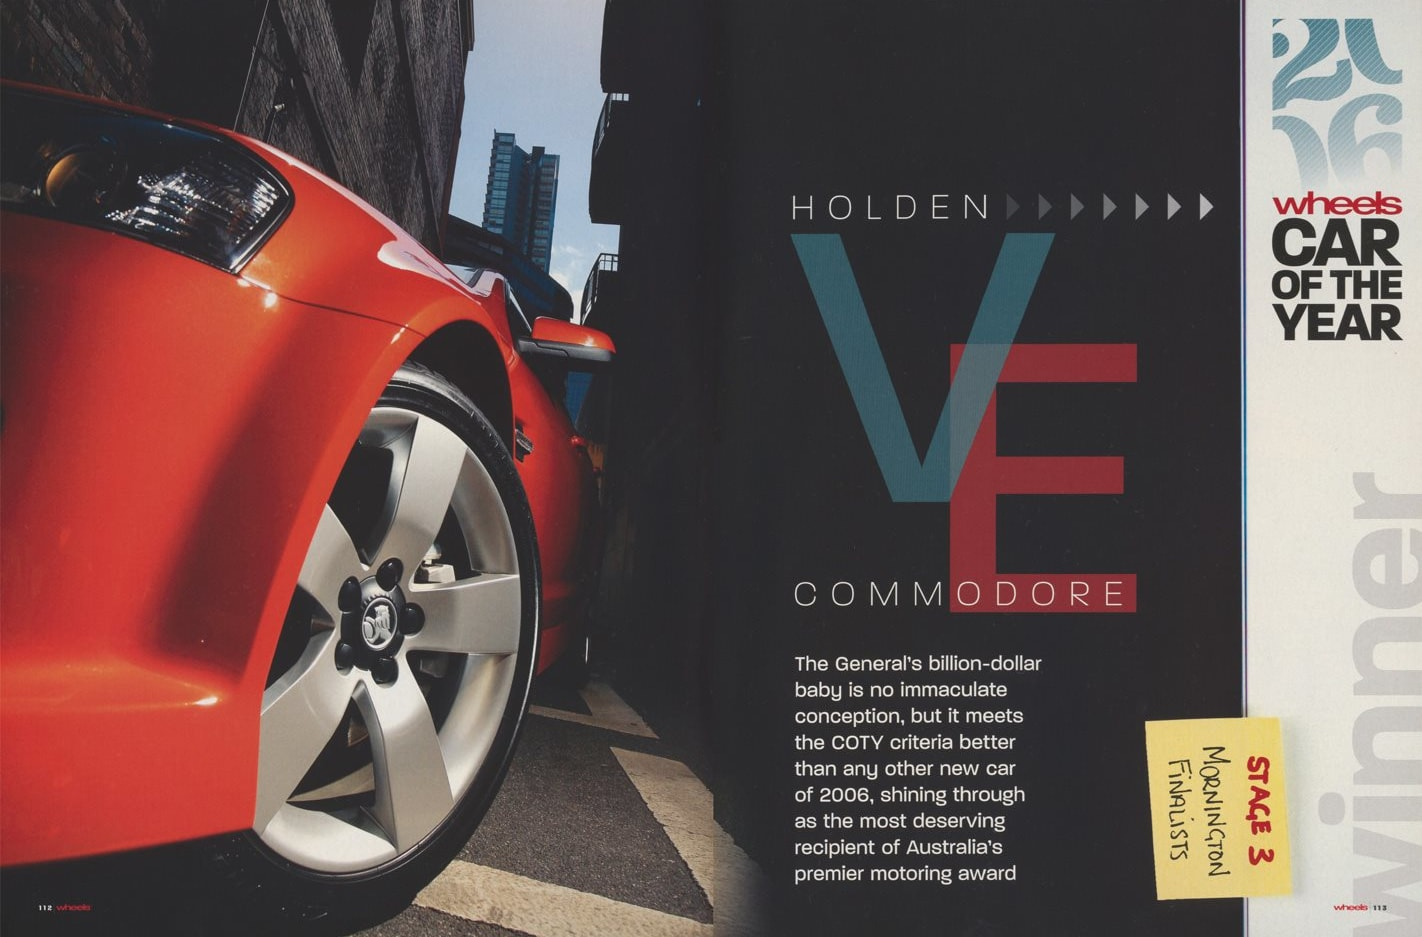 2007 Wheels Car of the Year: Holden VE Commodore